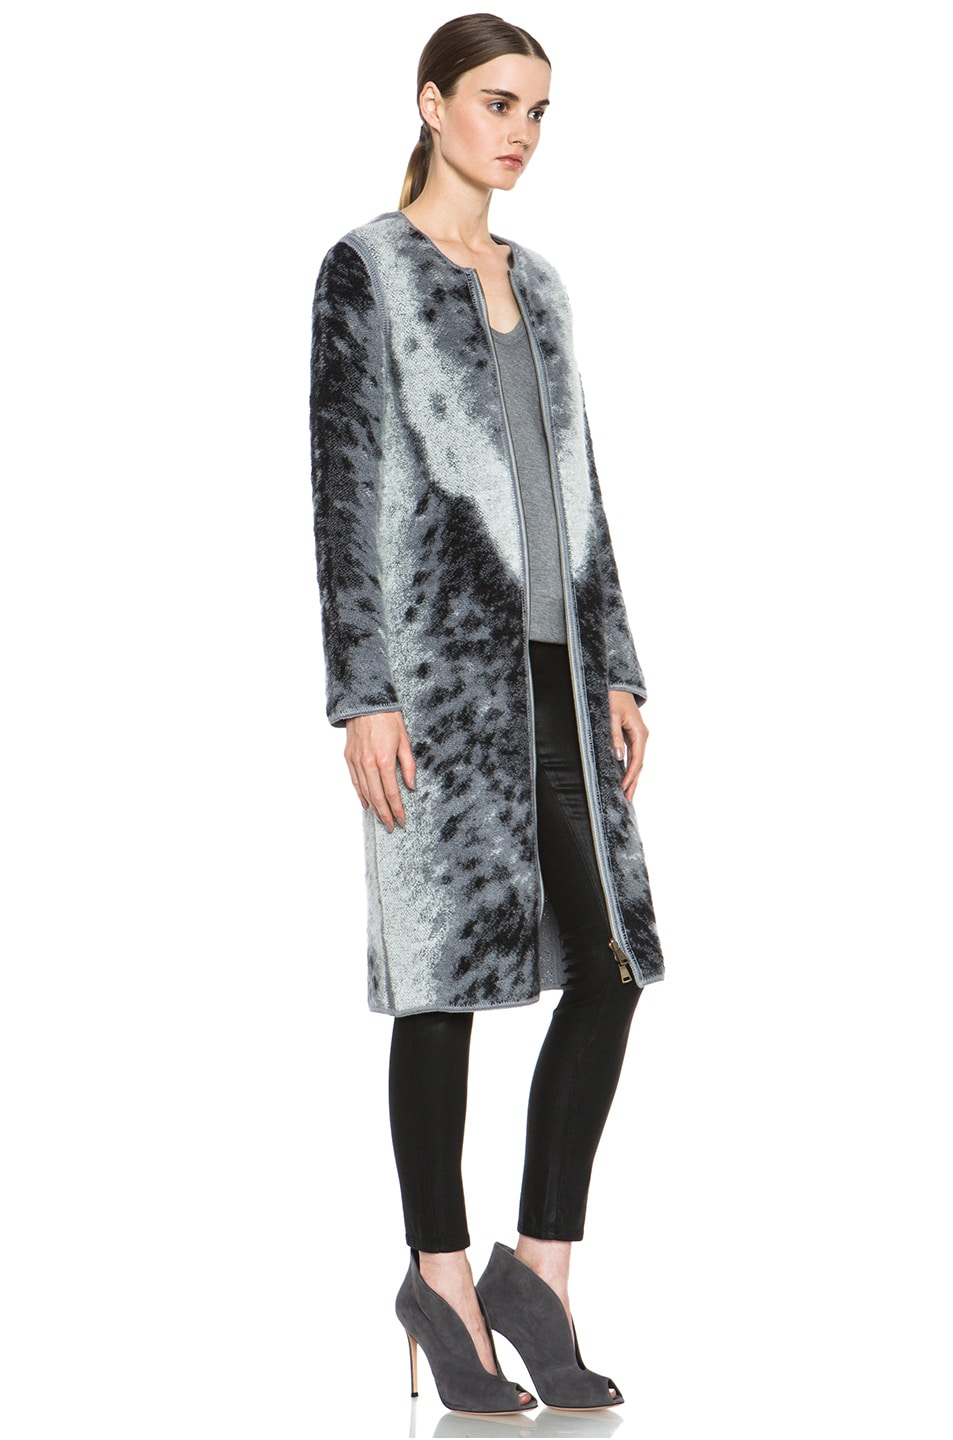 Image 4 of Missoni Mohair-Blend Cardigan Jacket in Grey Leopard & Zebra Print